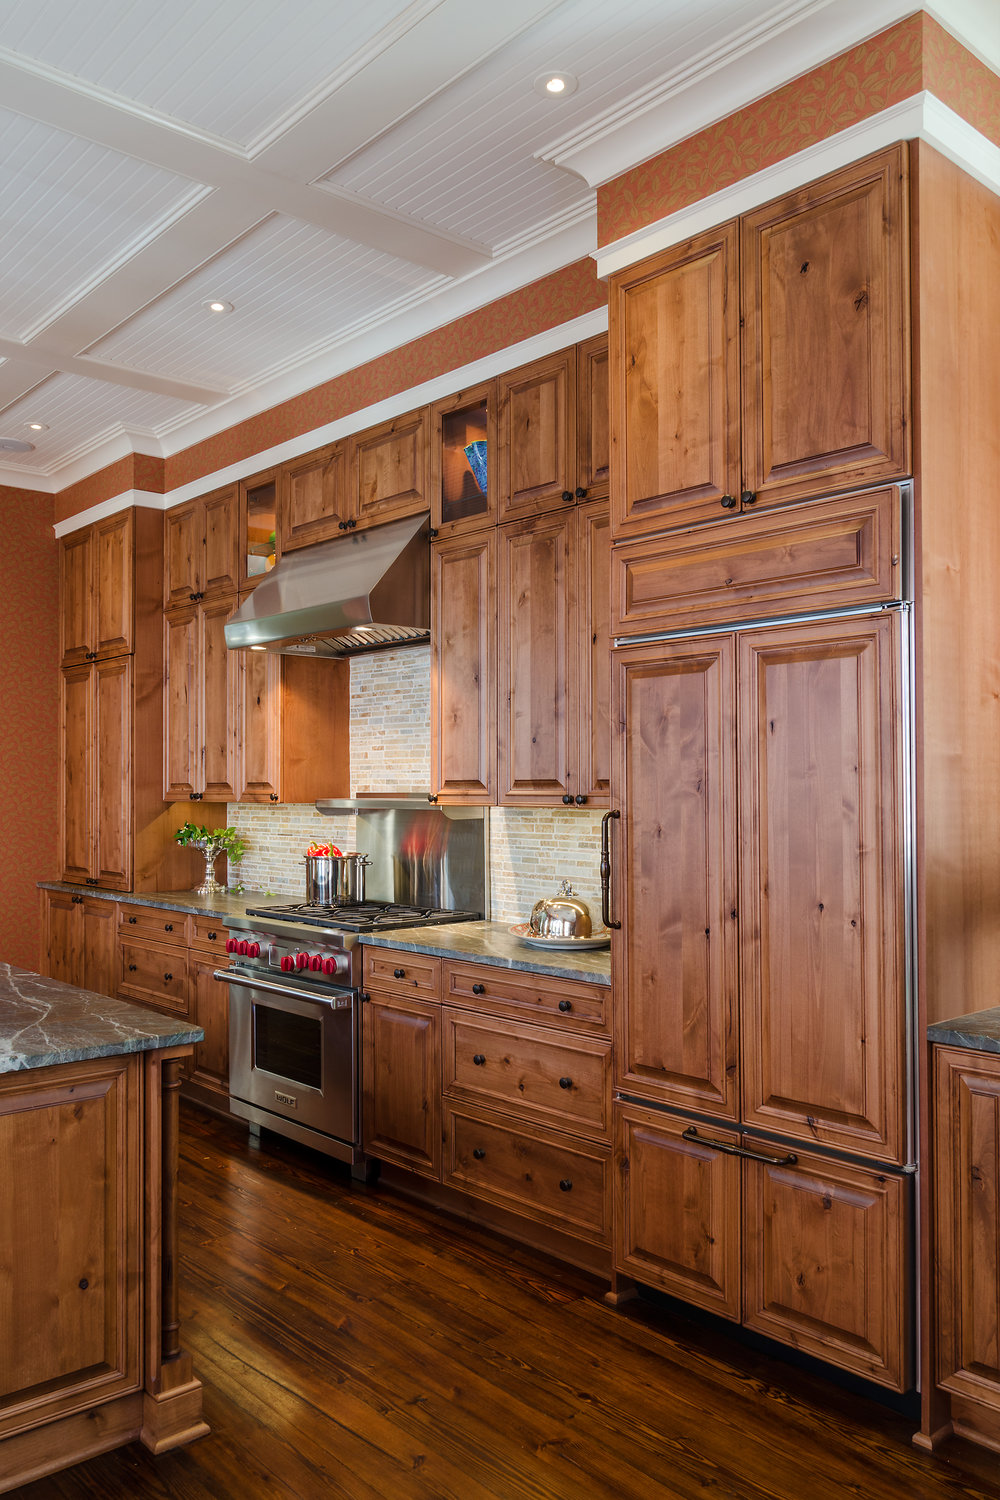 Custom-Kitchens-Wheat-Kitchen-52913-Refrigerator-Stove-wall-1.jpg